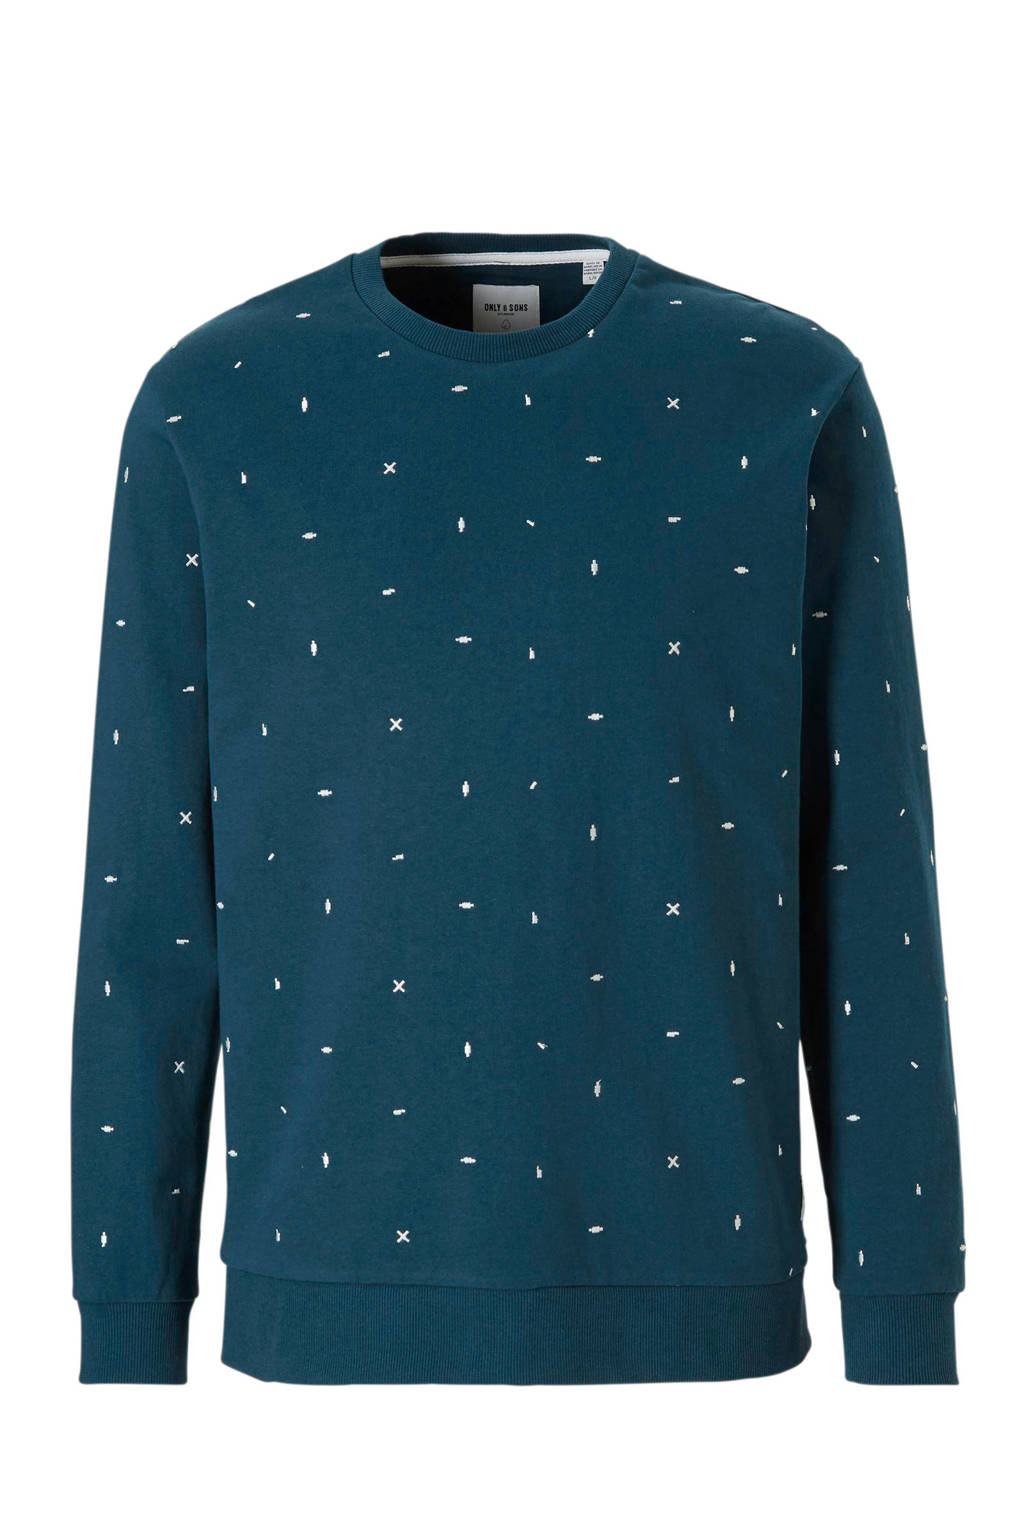 ONLY & SONS sweater, Petrol